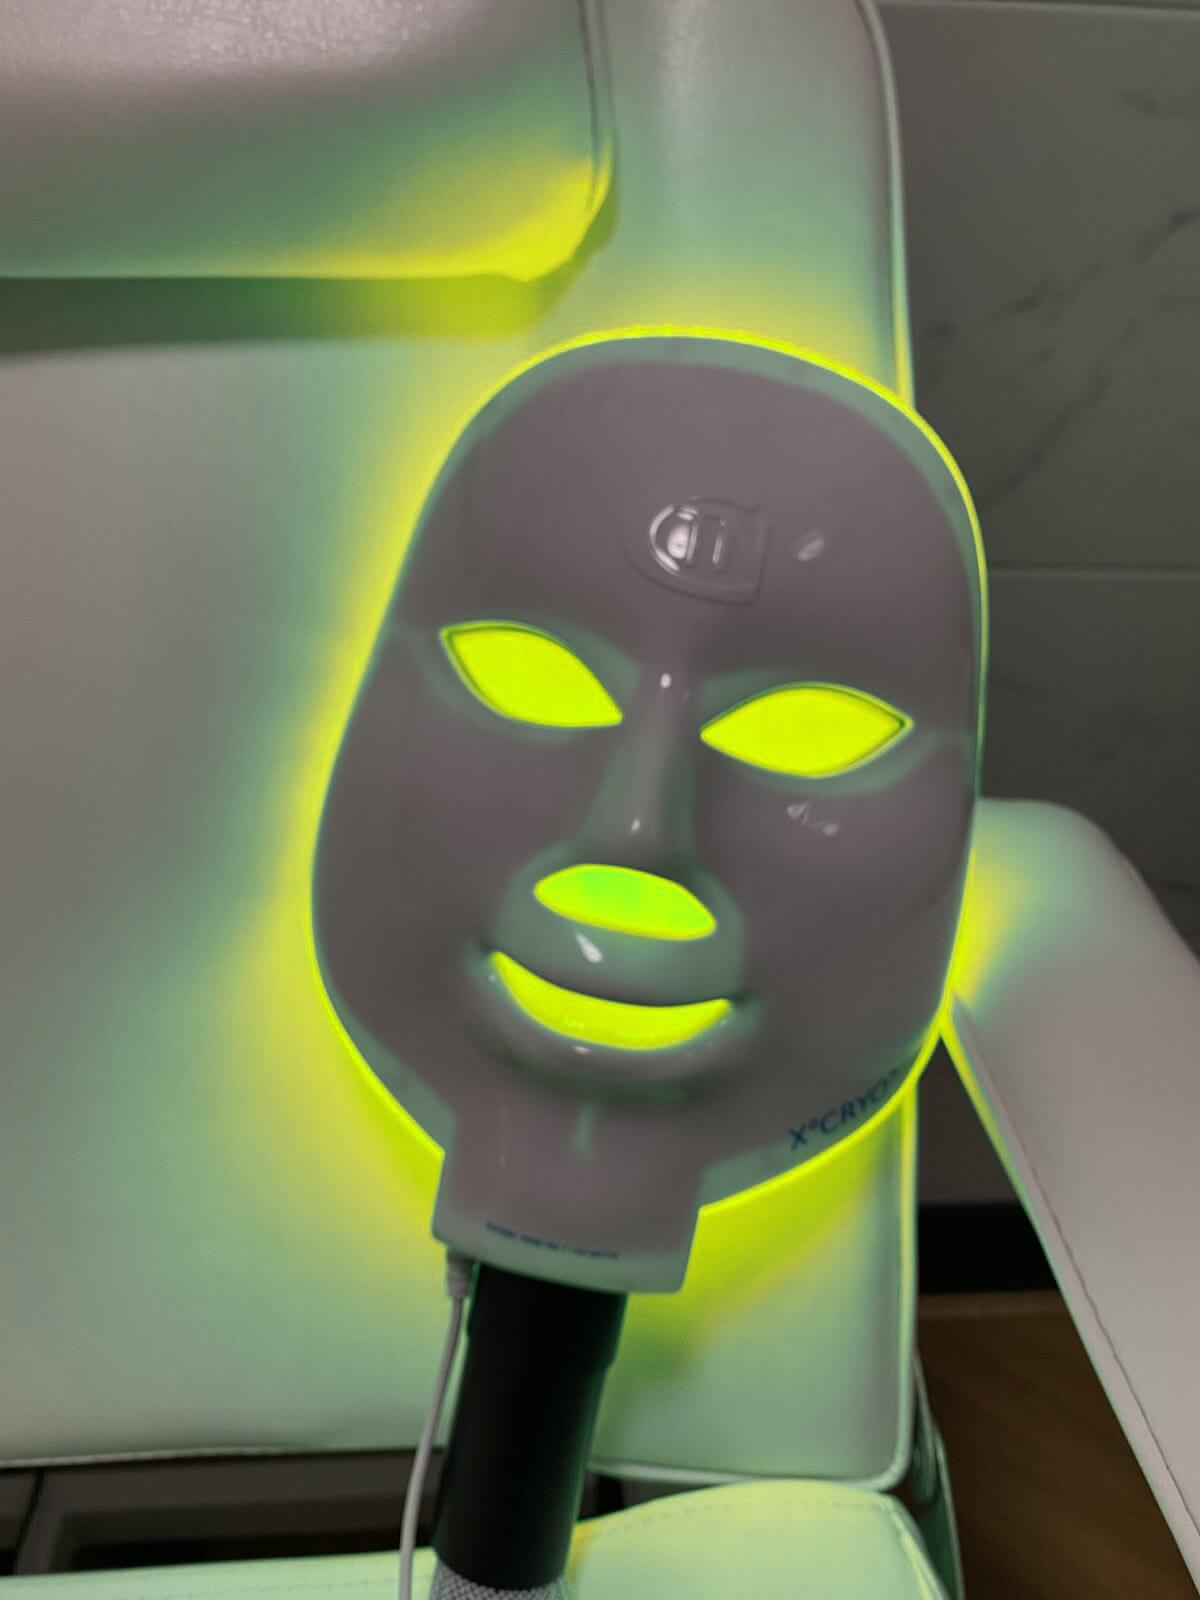 Yellow LED Light - IV Vitamin & Therapy Lounge